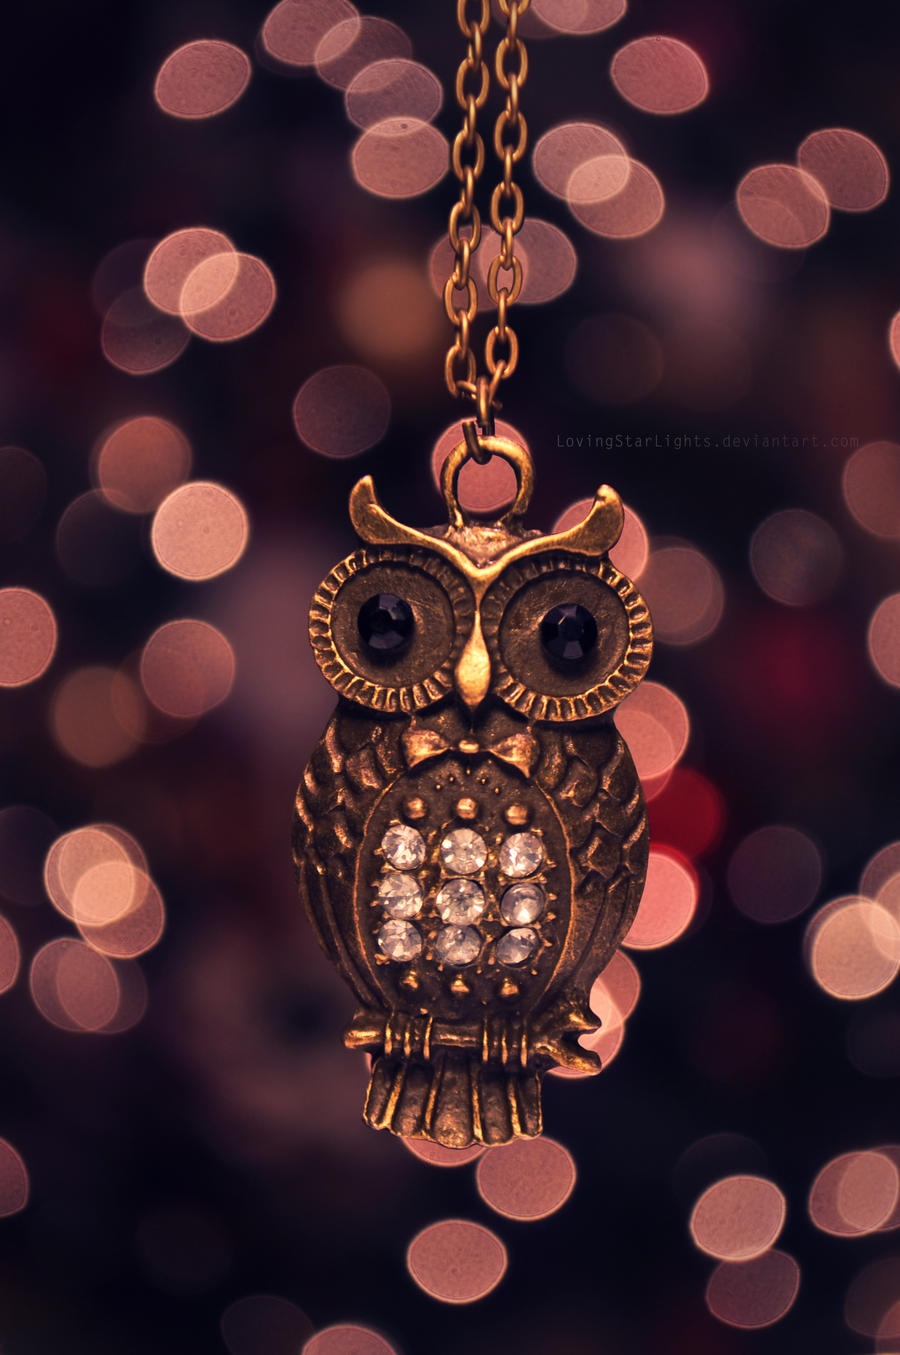 Mr. Owl by MintLights